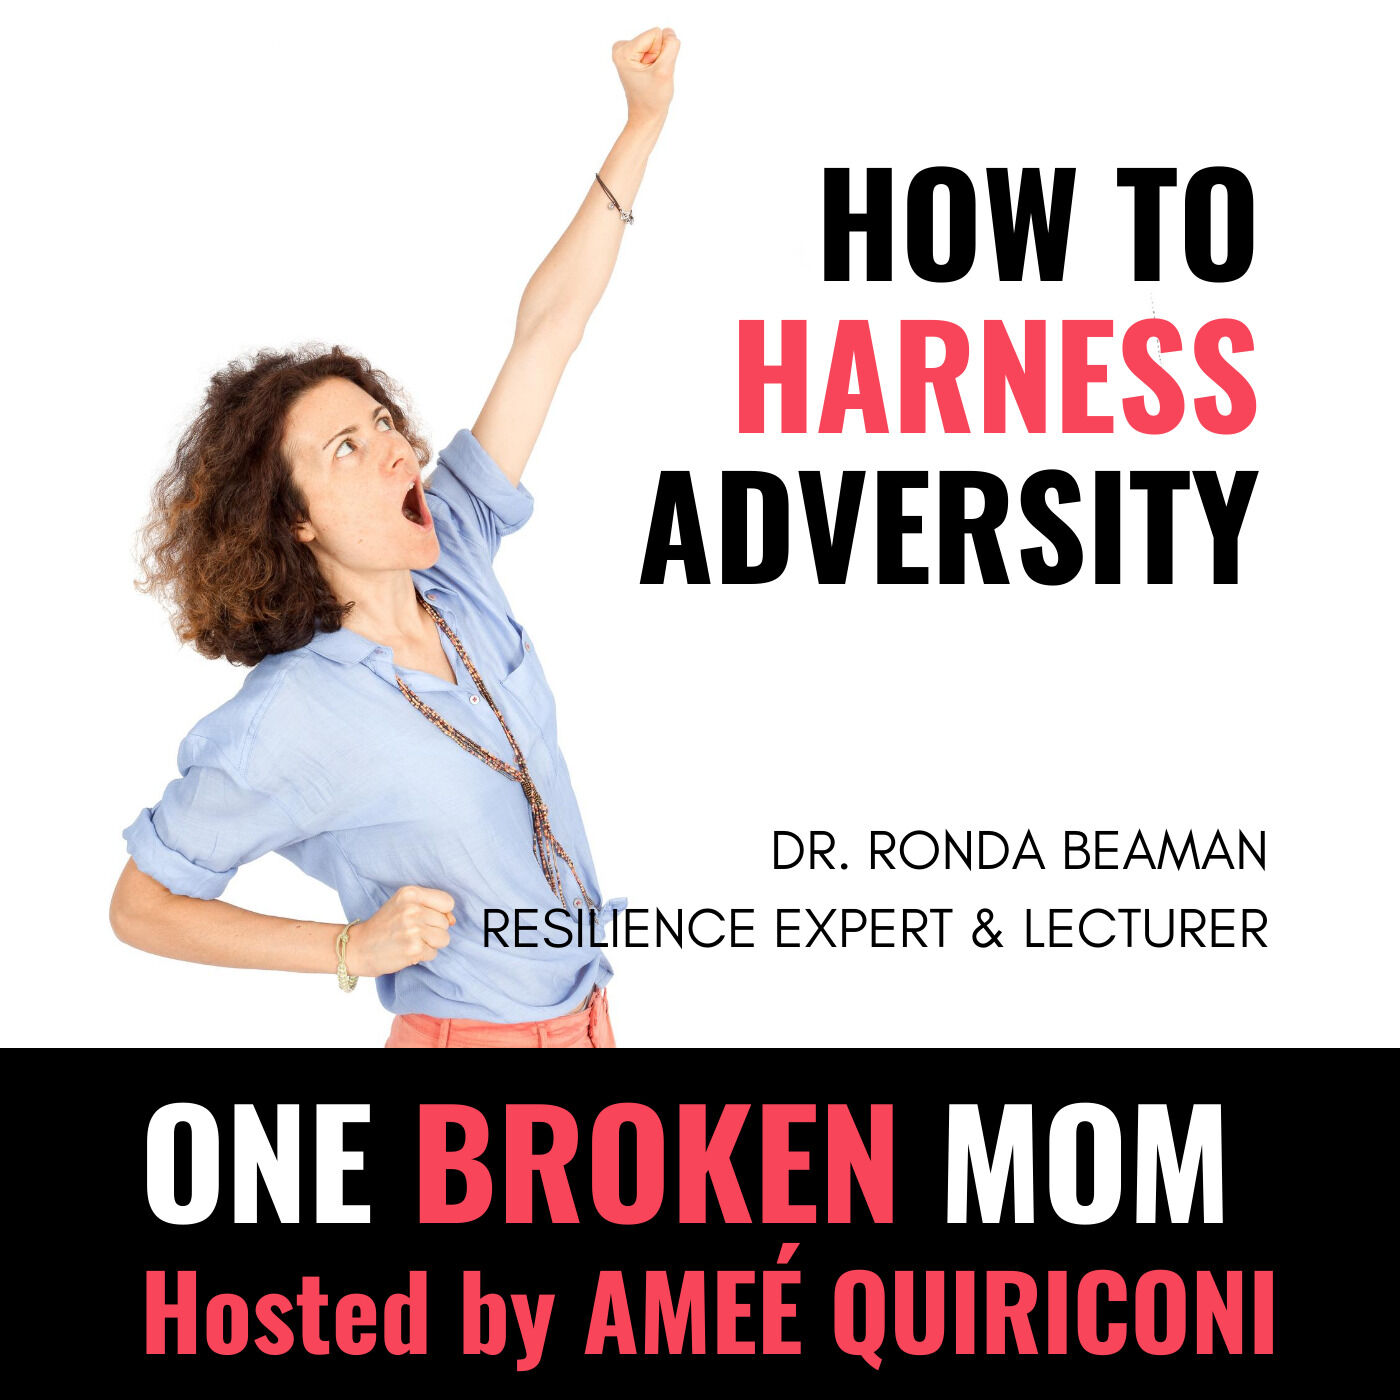 How To Harness Adversity with Dr. Ronda Beaman